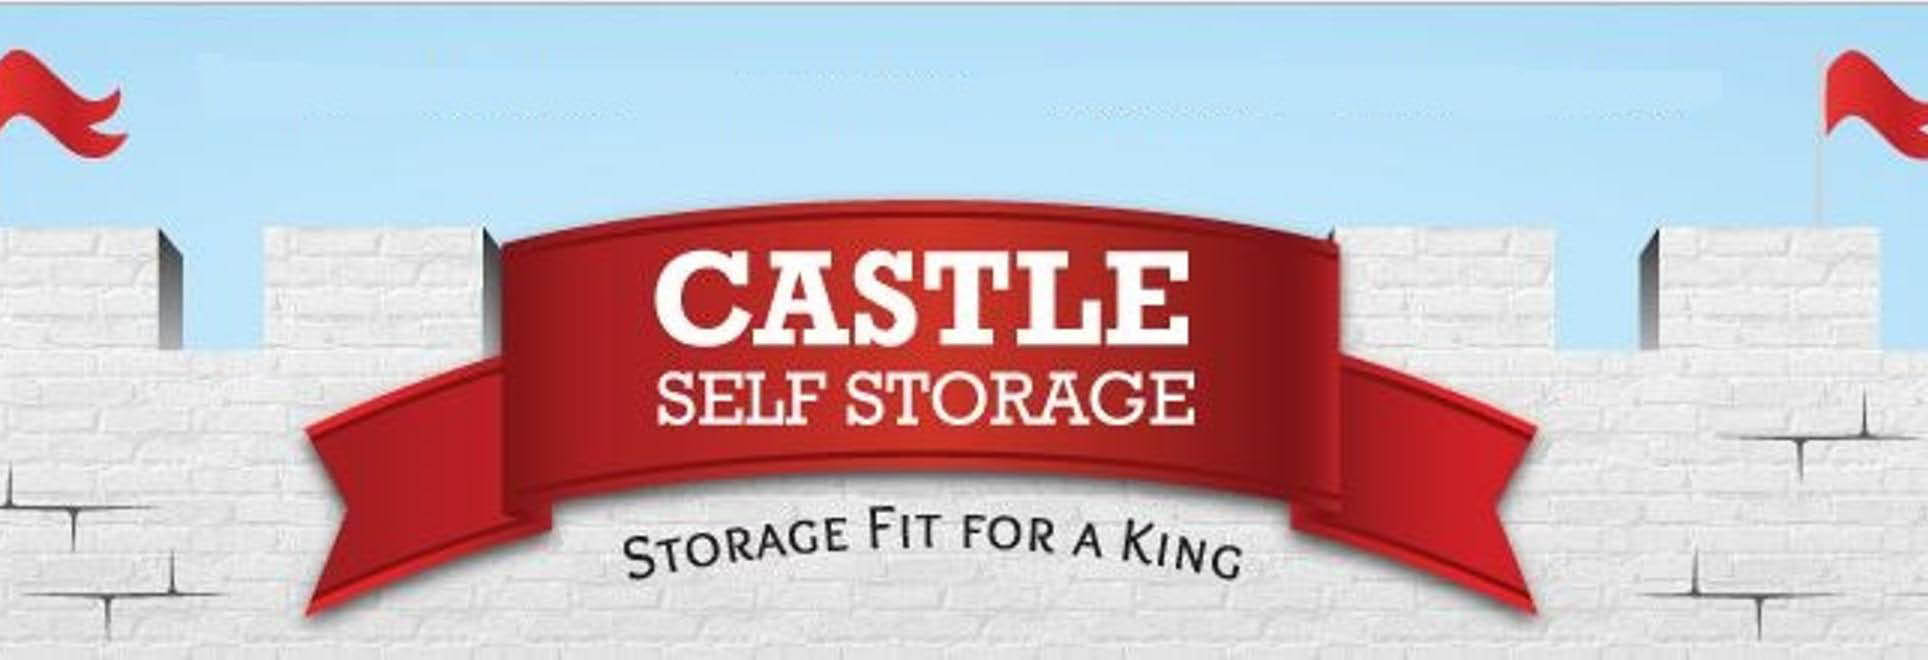 Castle Self Storage.  Braintree, MA.  Self Storage.